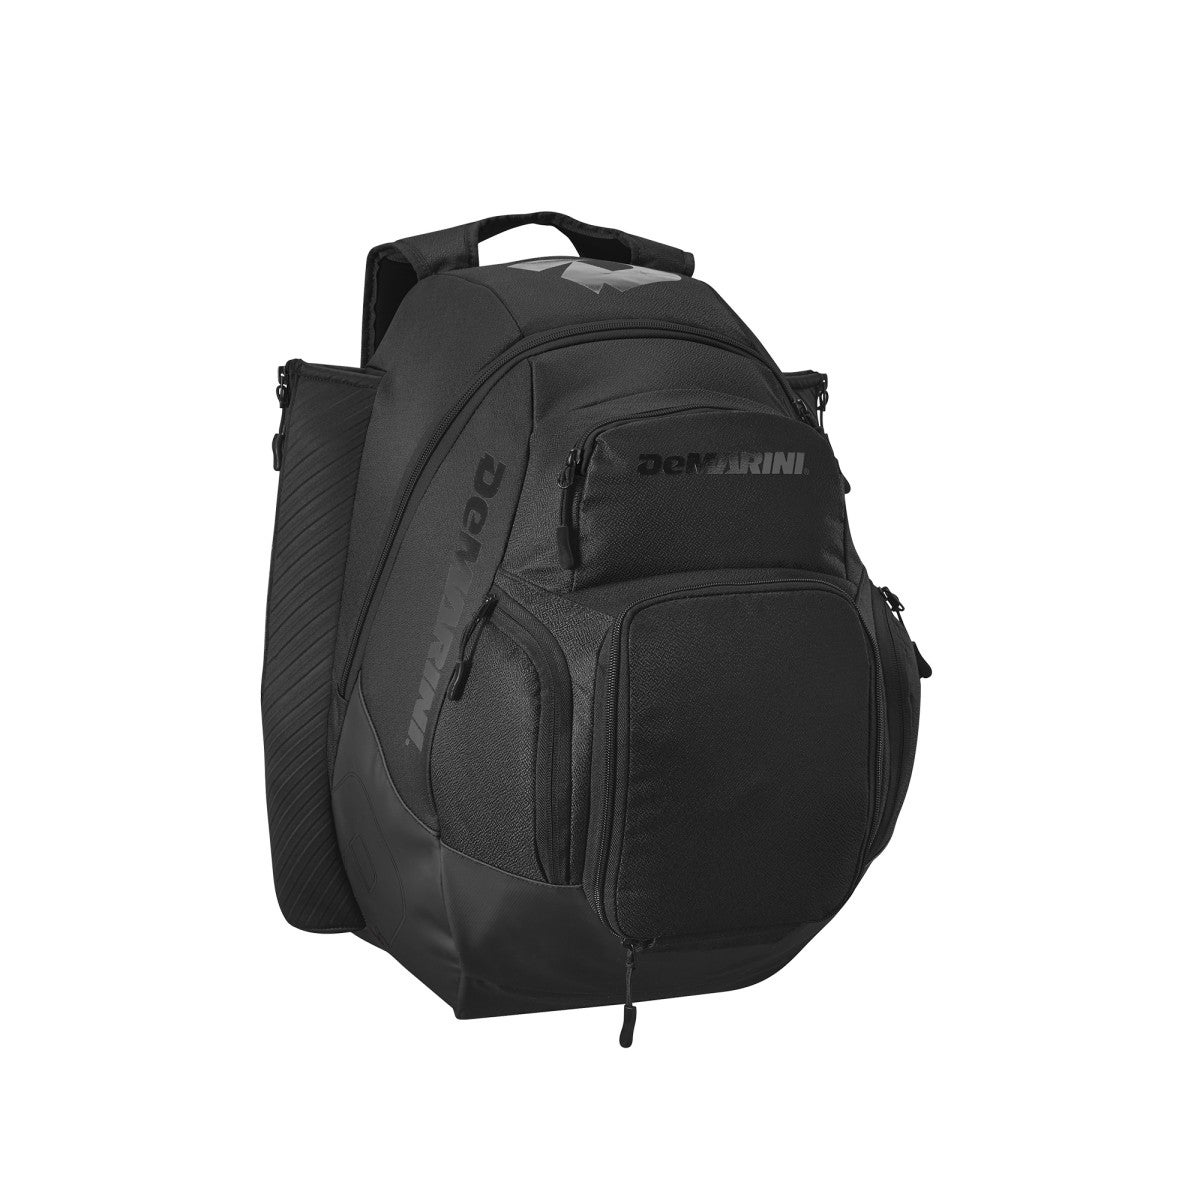 DeMarini Voodoo OG Backpack